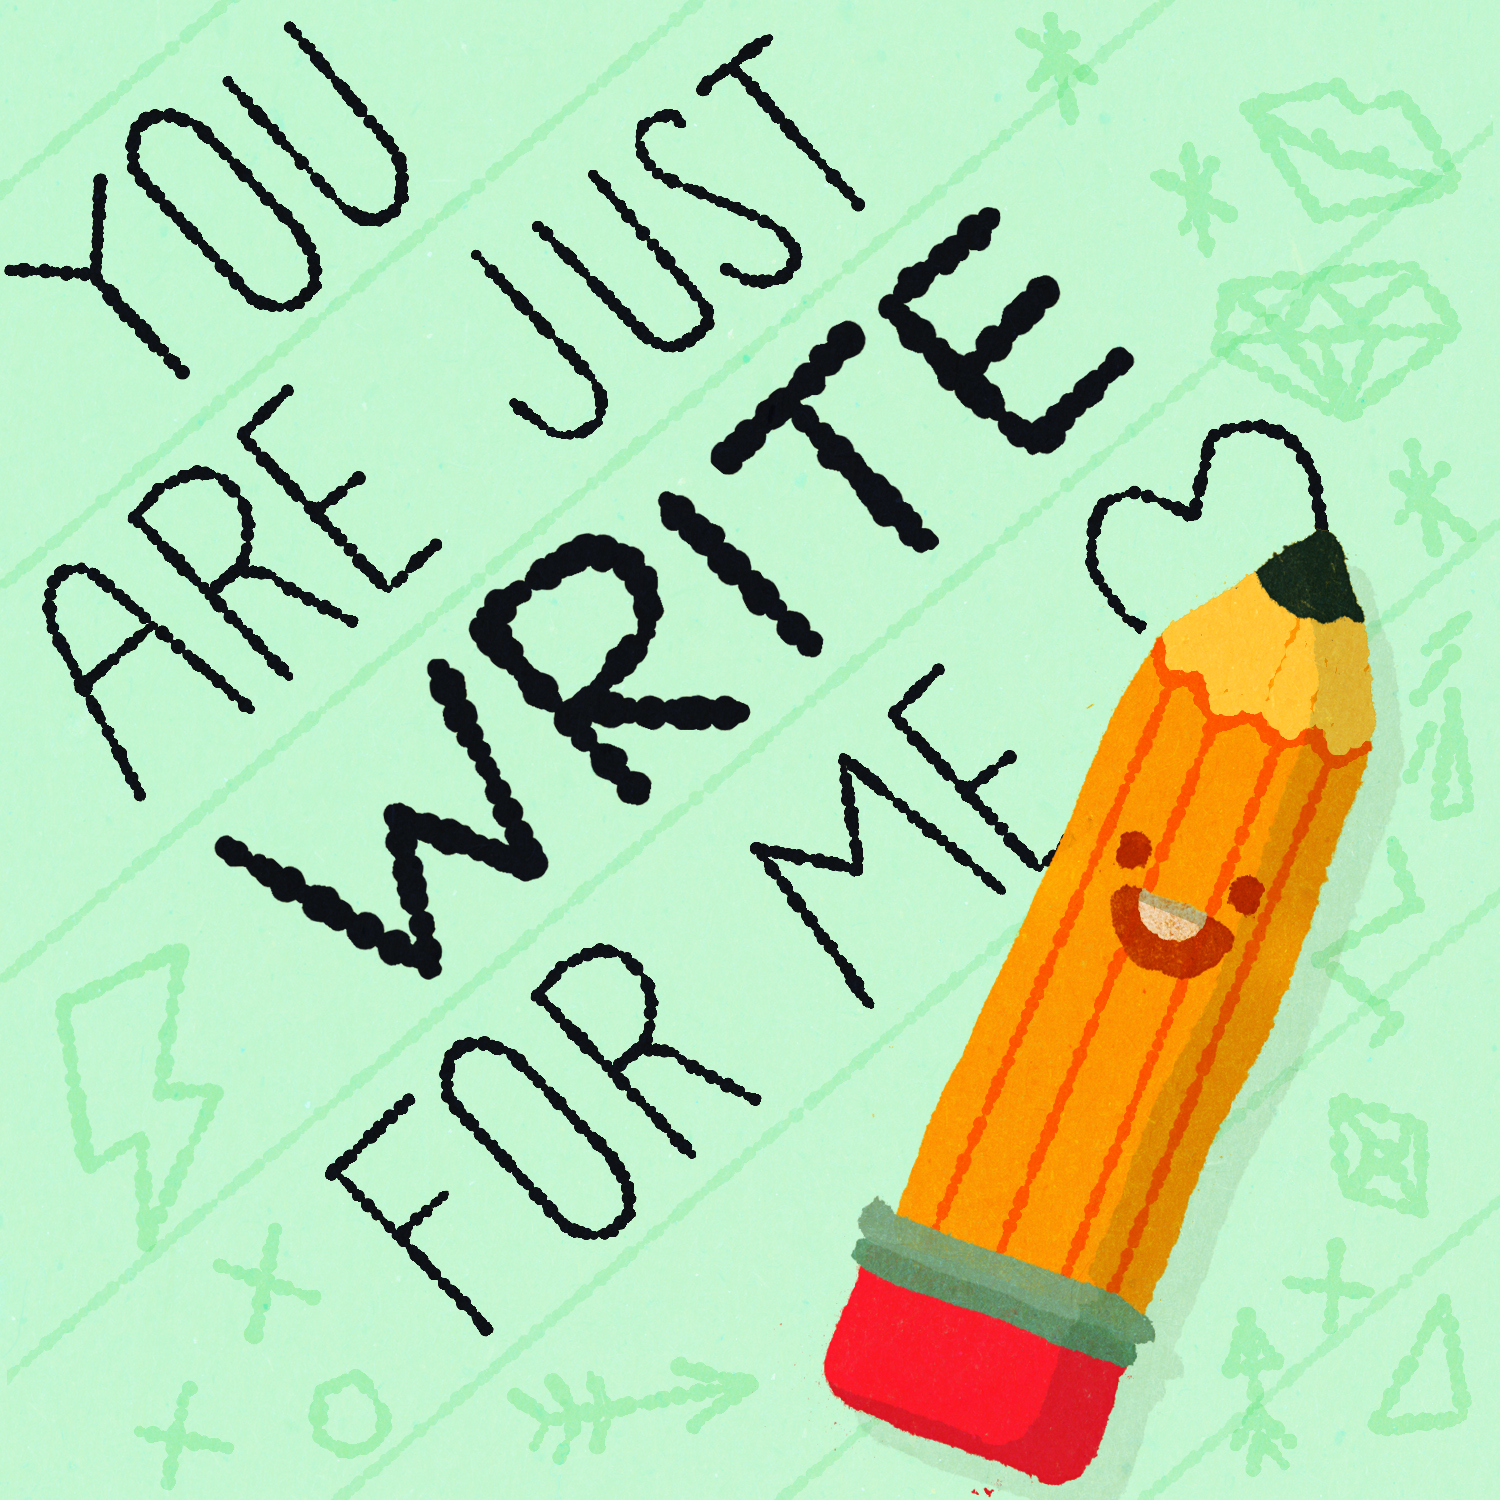 You are just write for me